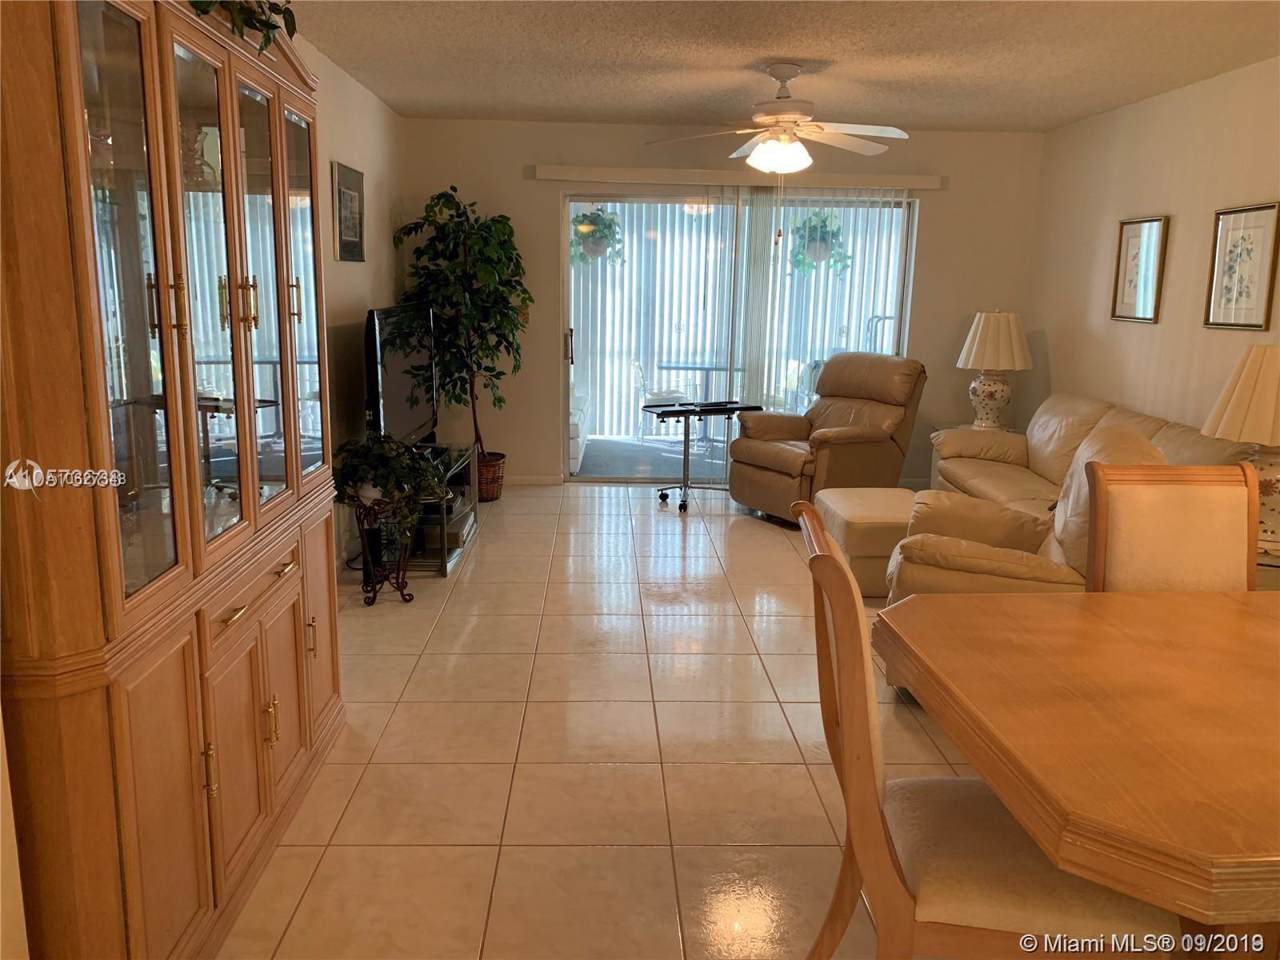 7827 Golf Cir Dr - Photo 1